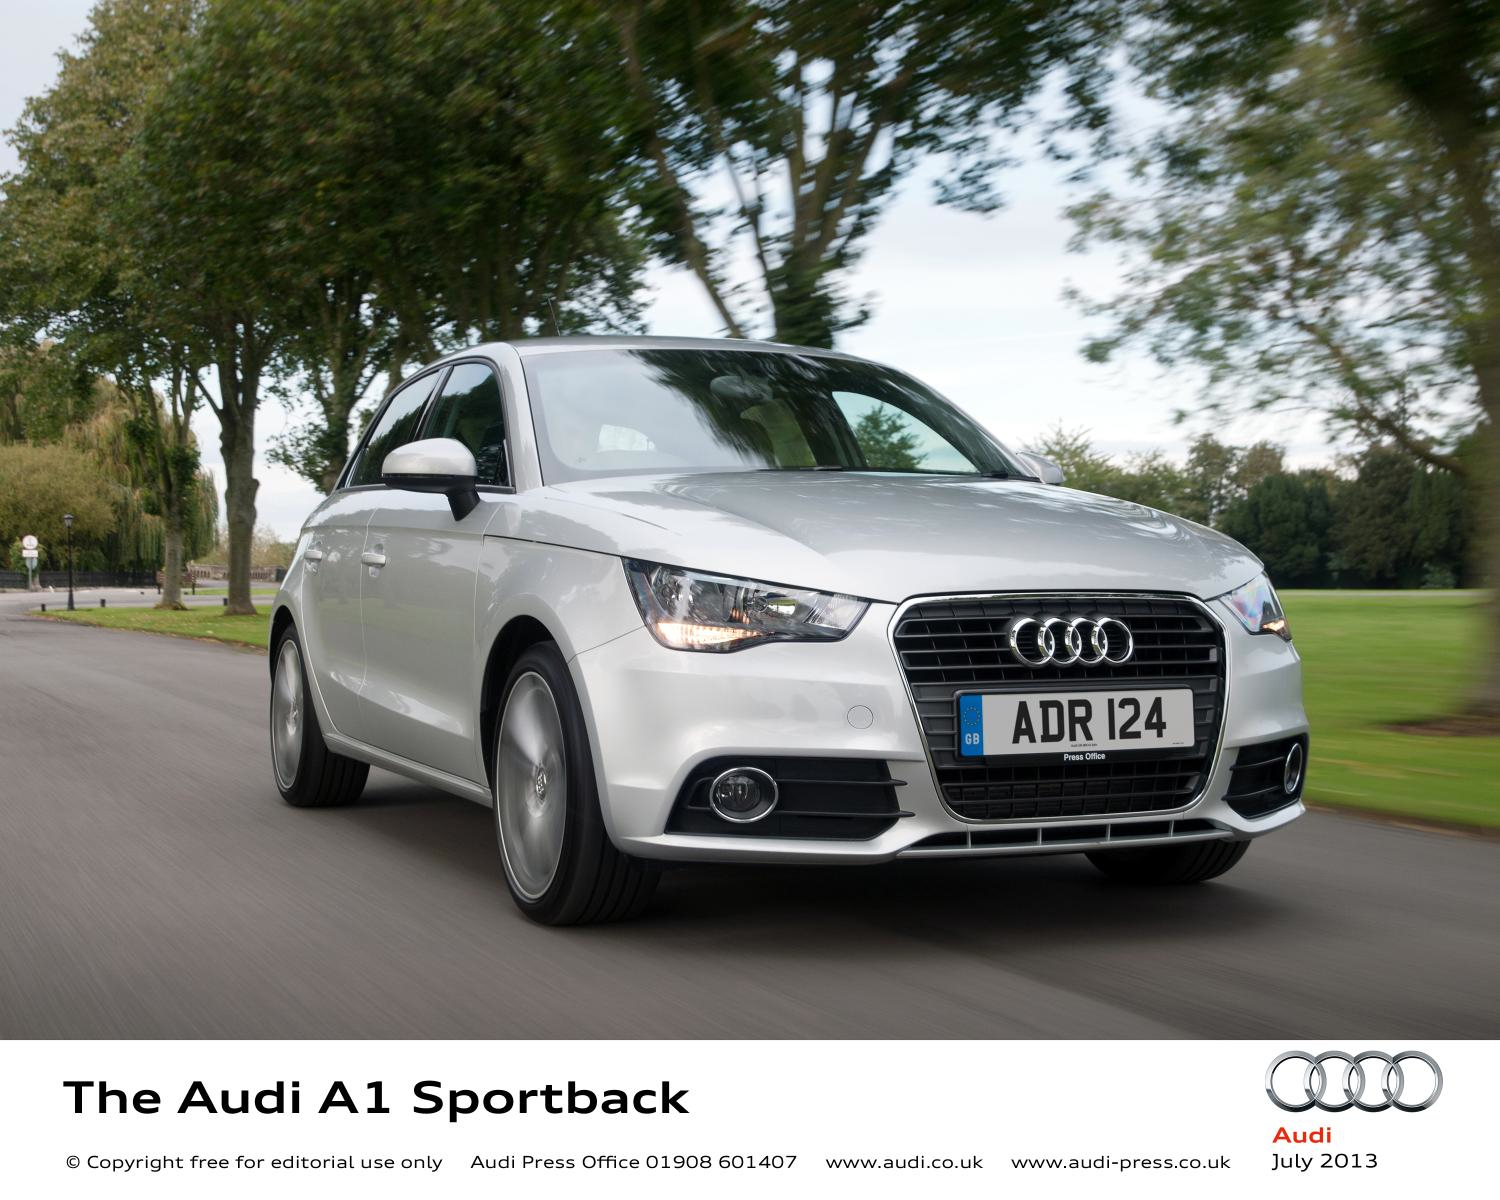 Audi A1 Sportback road test report and review